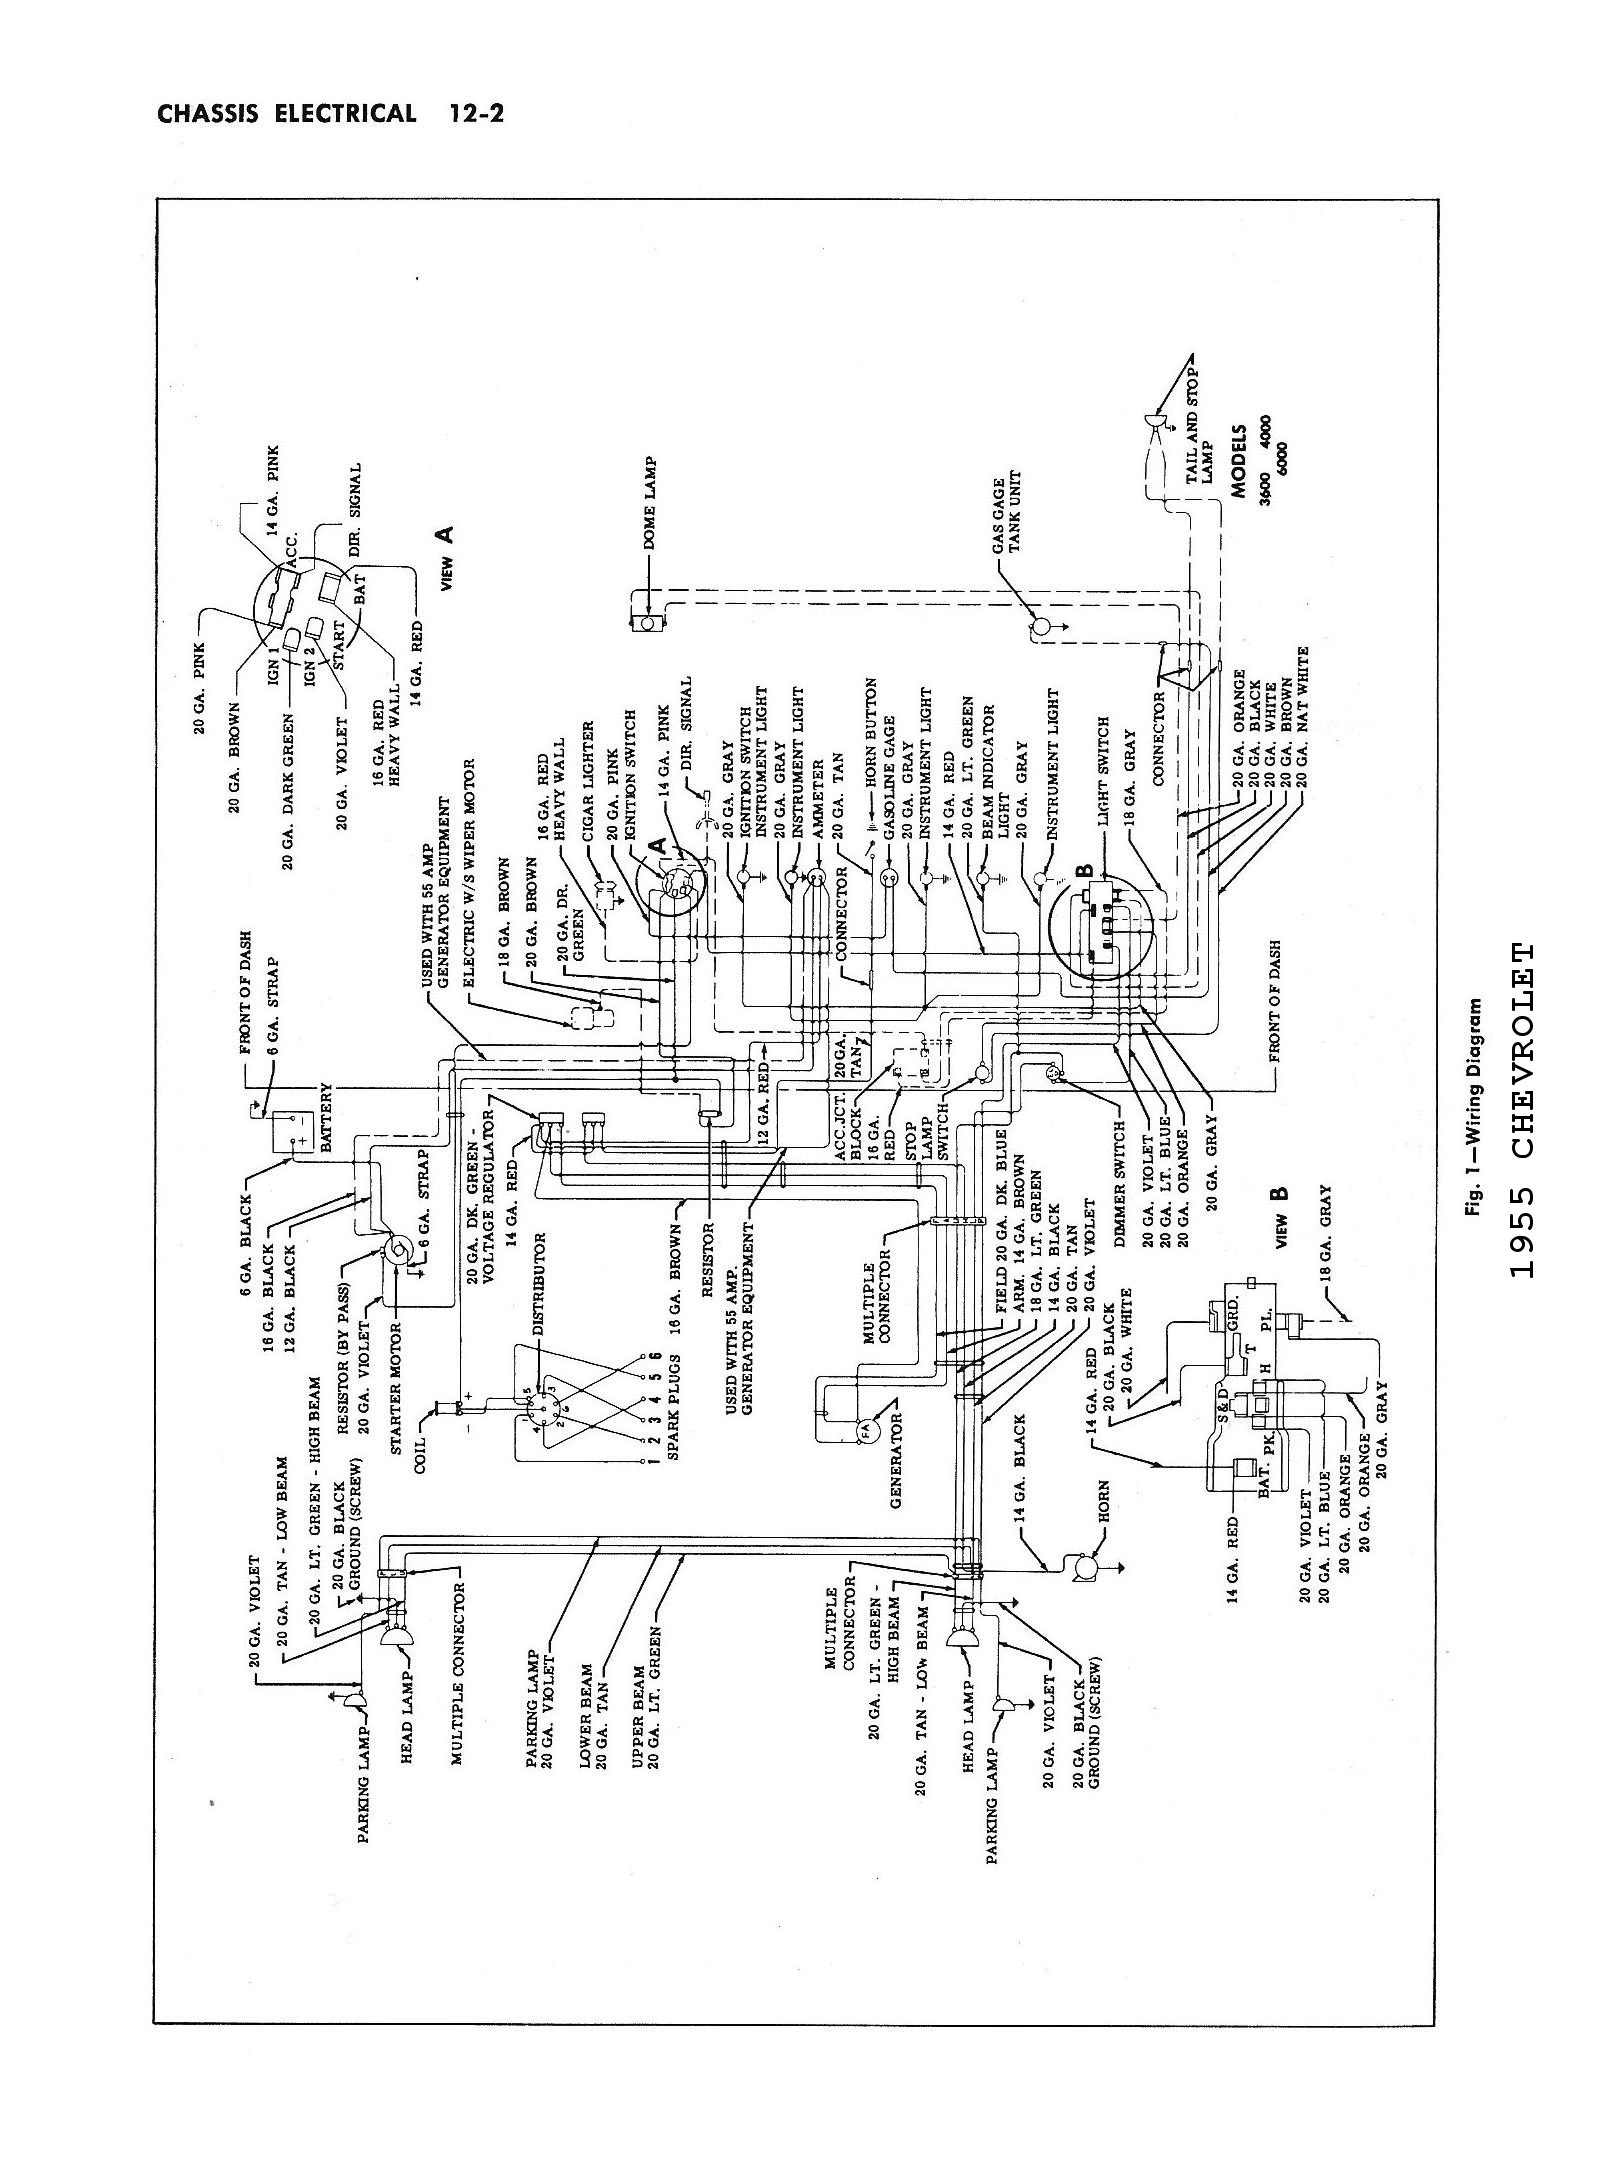 1955 Ford Wiring Harness Archive Of Automotive Diagram 1969 Torino Schematic Another Blog About U2022 Rh Emmascott Co F100 Truck